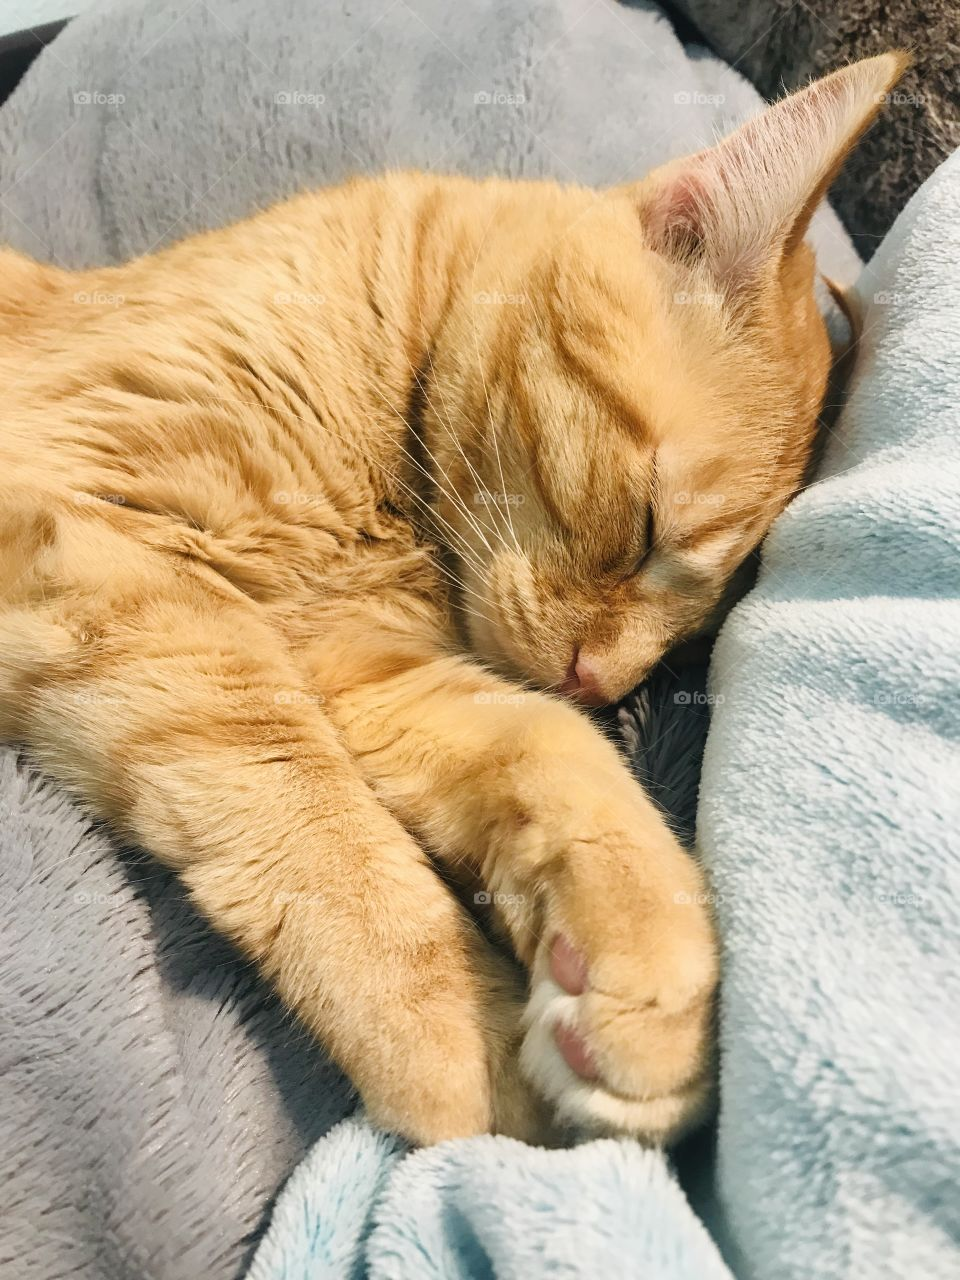 Darling orange tabby kitty cat all cuddled up in cozy blankets on bed!